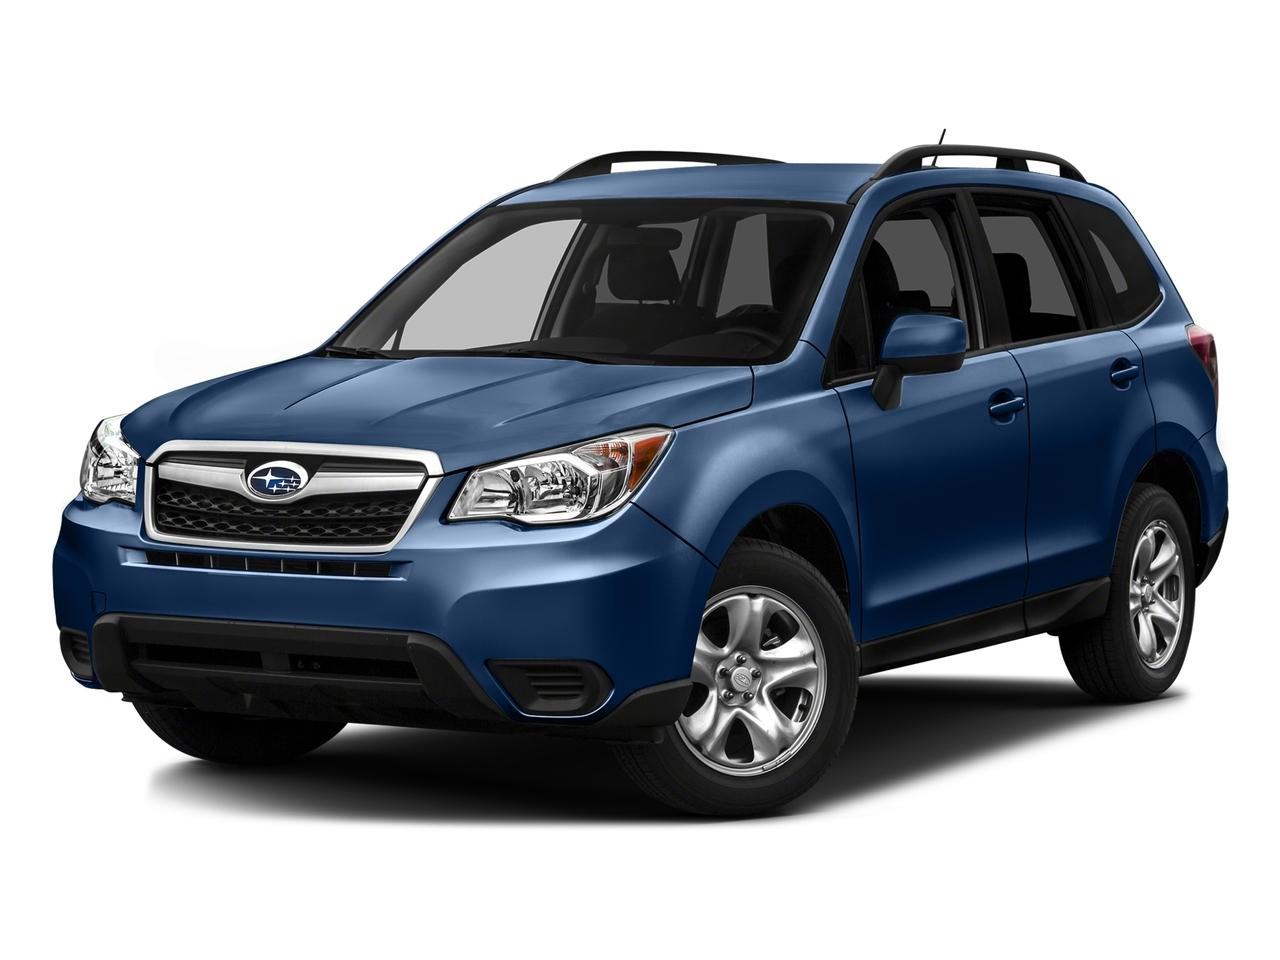 2016 Subaru Forester Vehicle Photo in South Portland, ME 04106